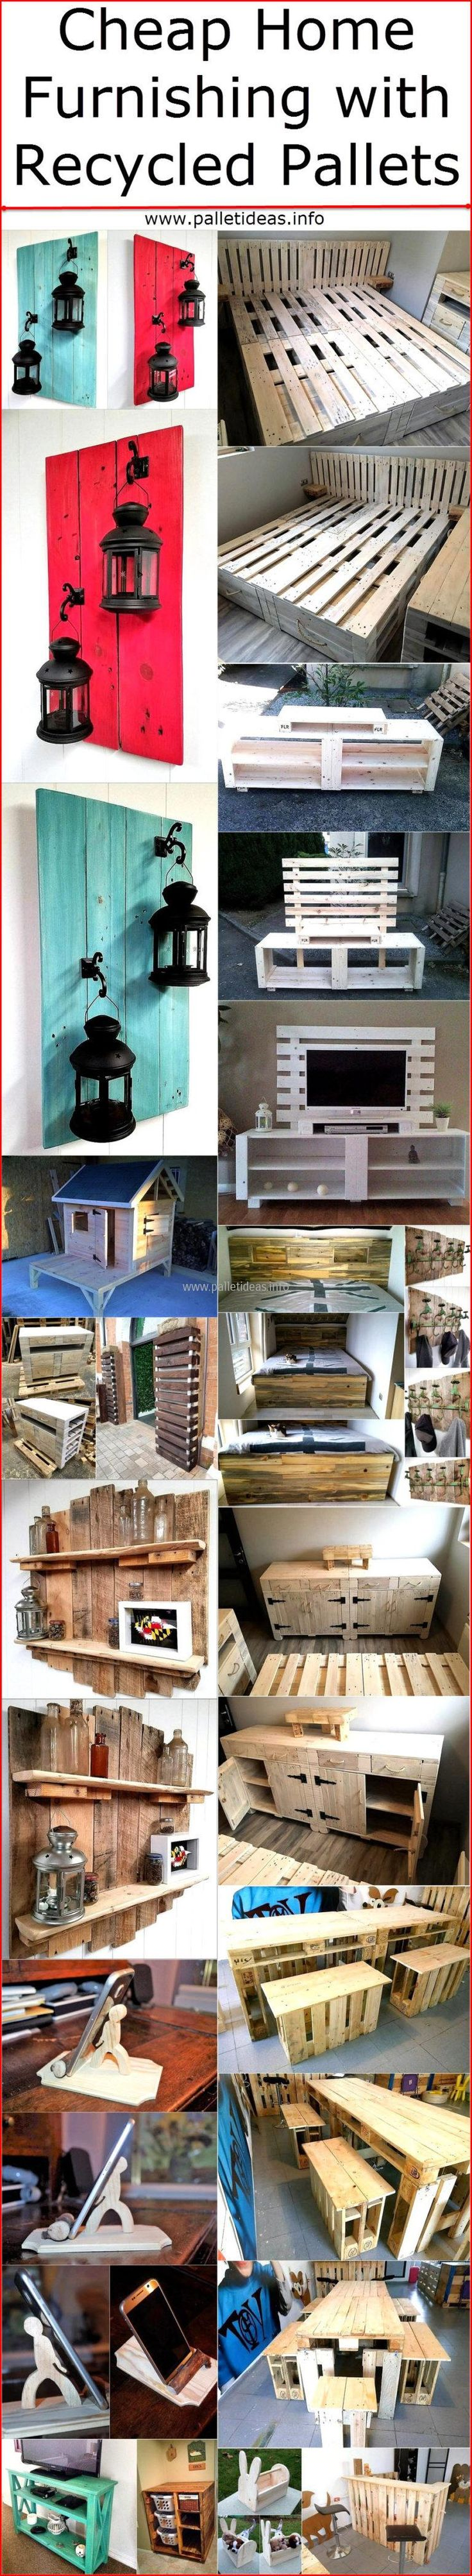 cheap-home-furnishing-with-recycled-pallets